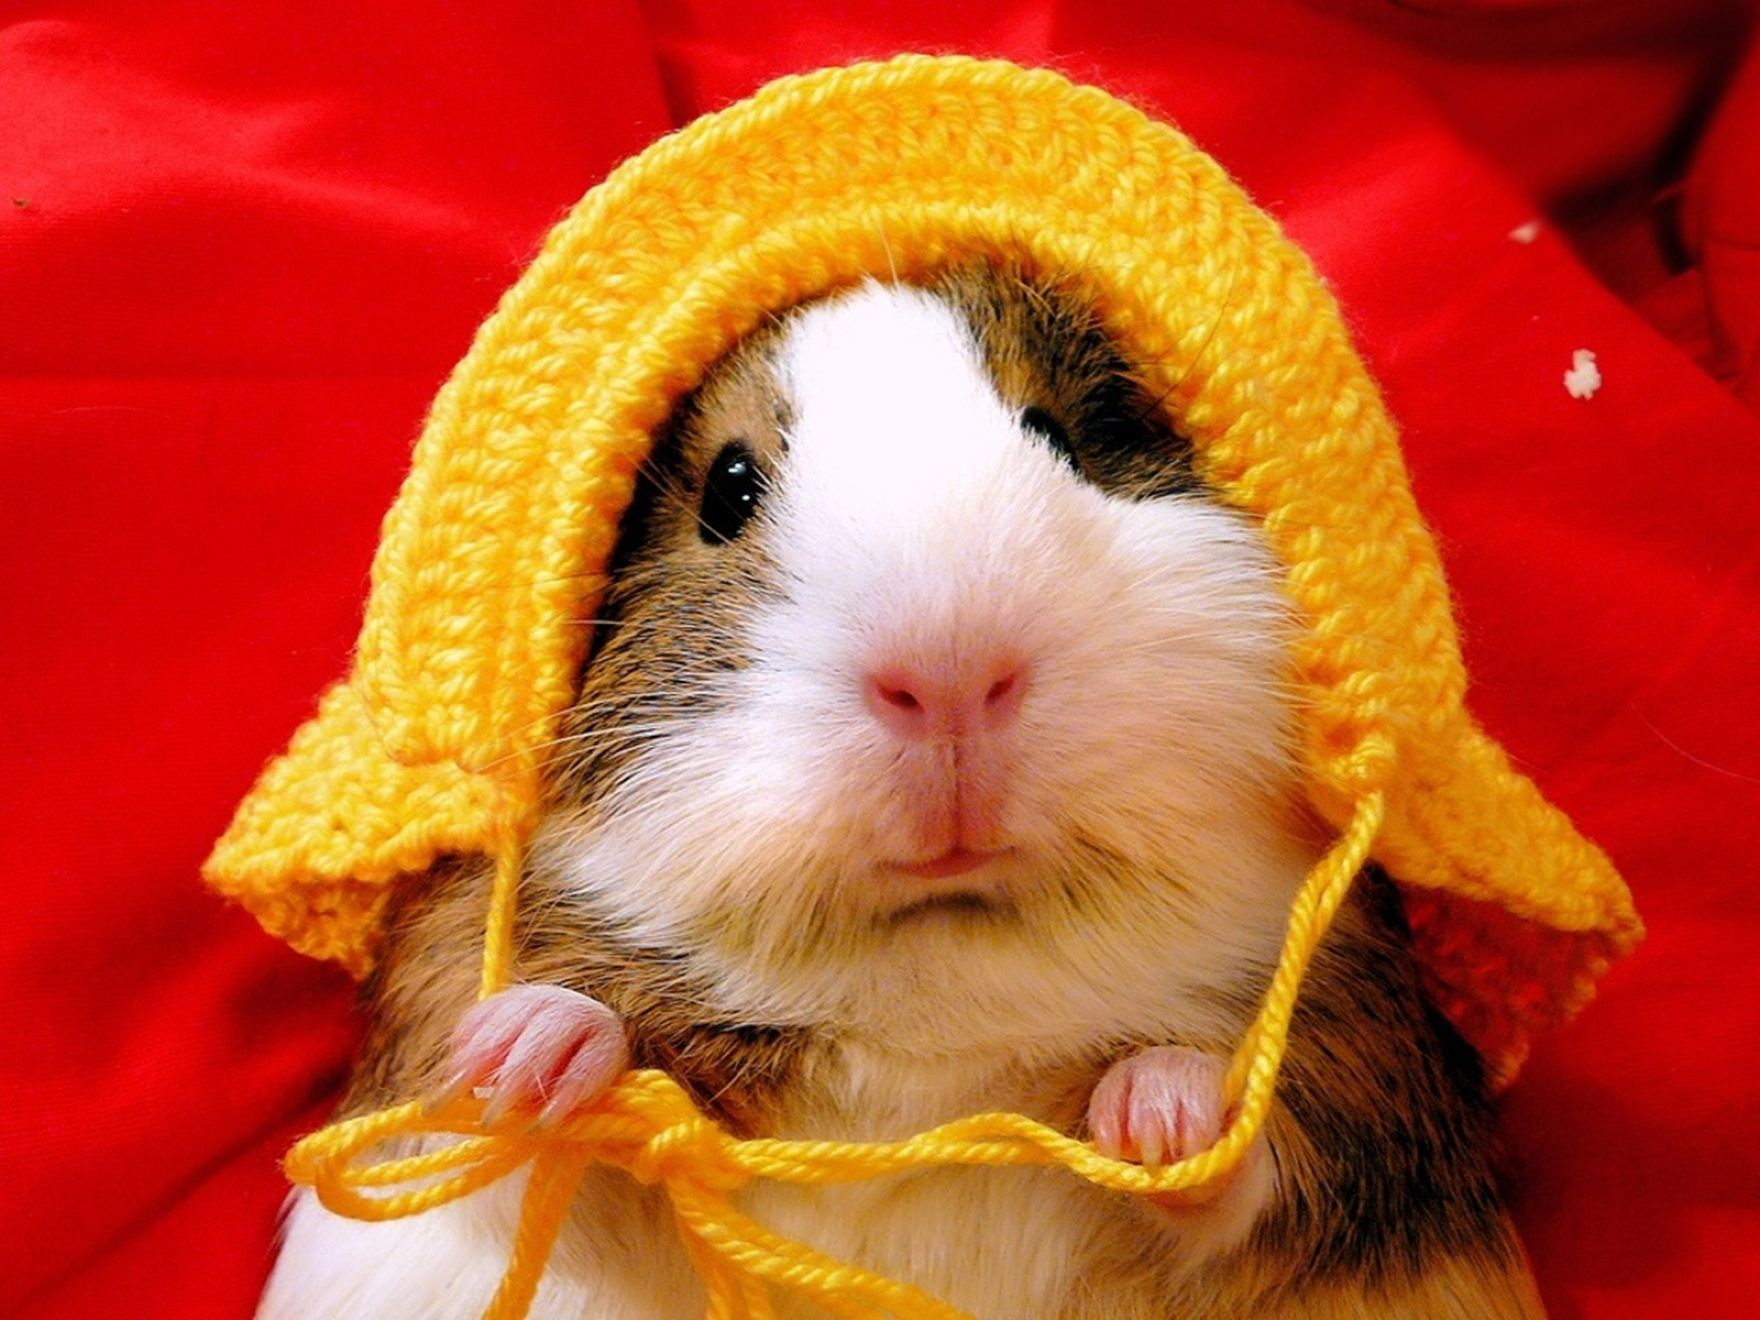 Download free HD Funny Hamster 1600×1200 Wallpaper, image